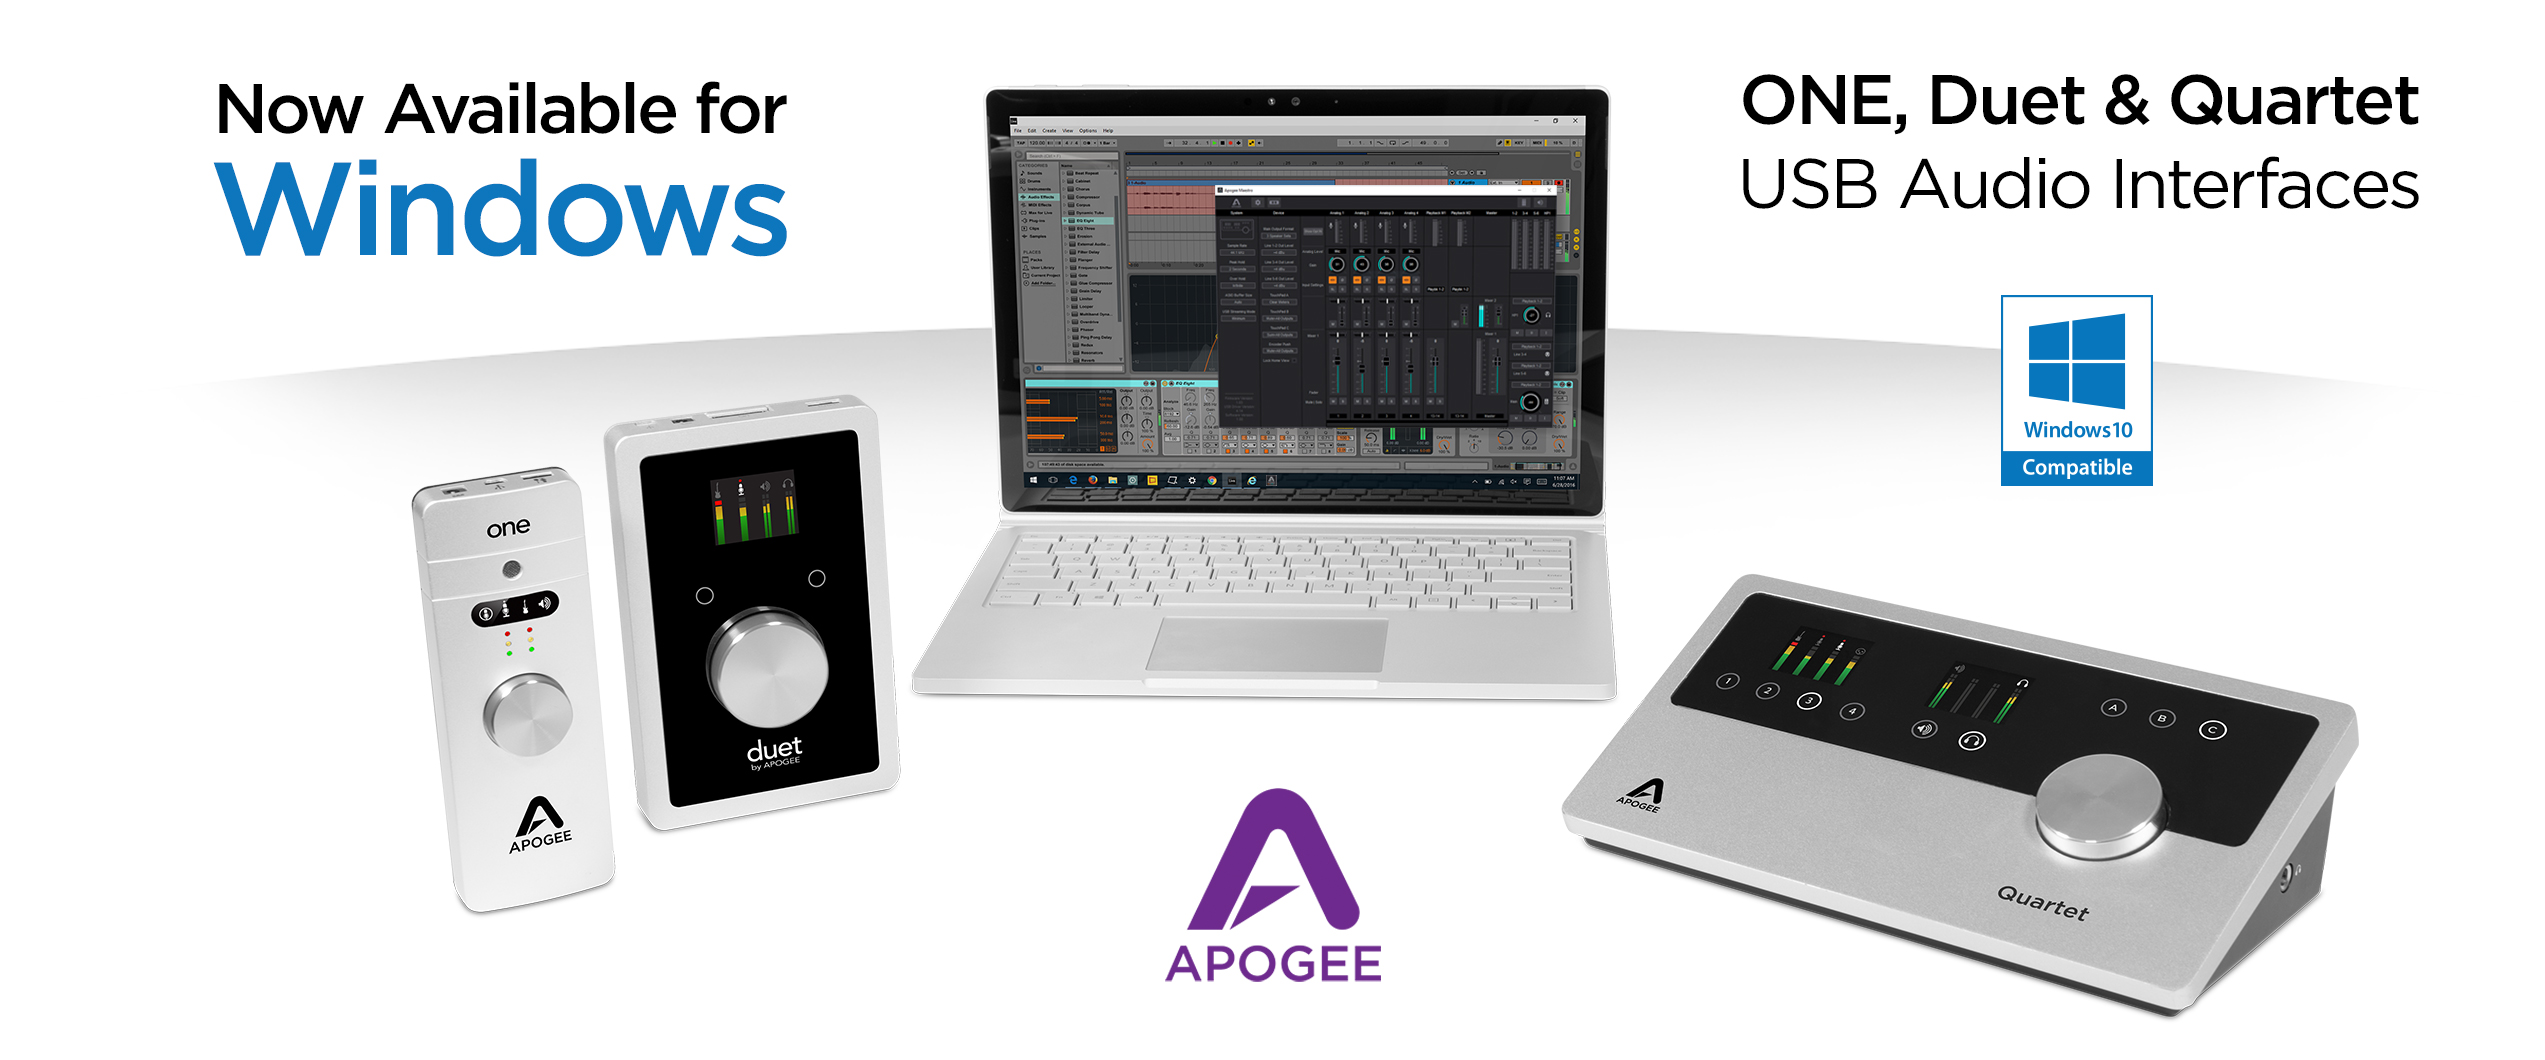 20171124_apogee_home-page-main-feature-windows-now-available